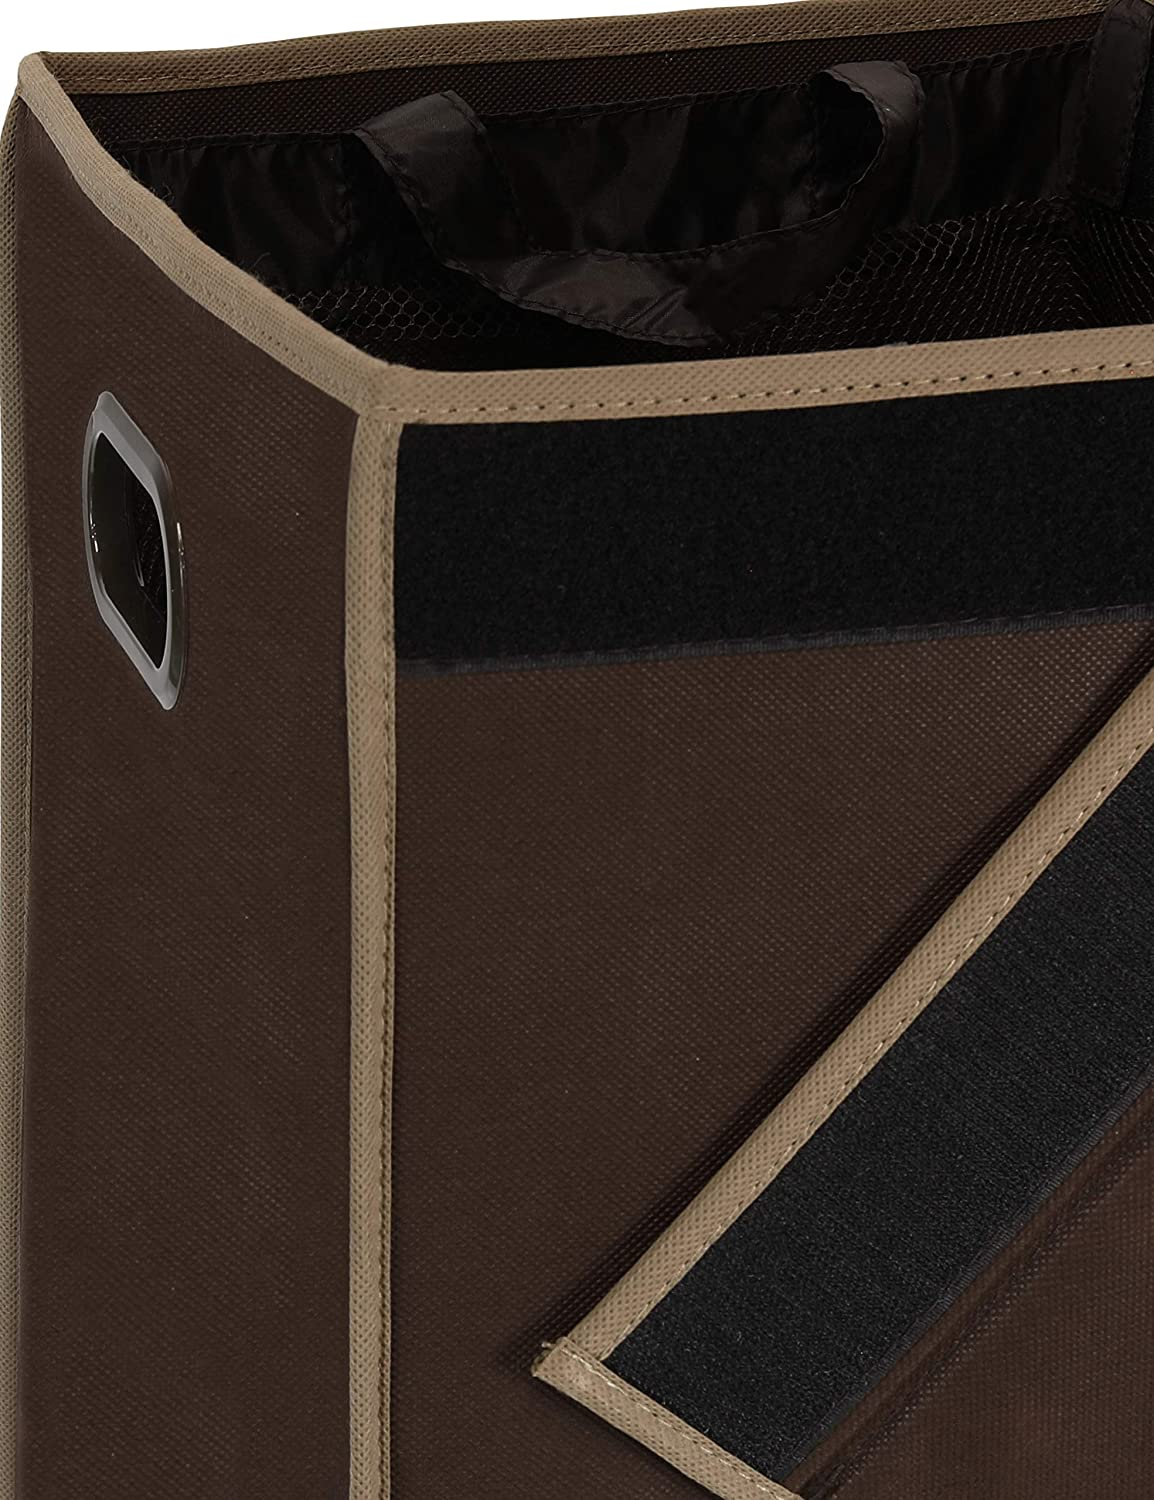 Brown Simplehouseware Double Laundry Hamper with Lid and Removable Laundry Bags